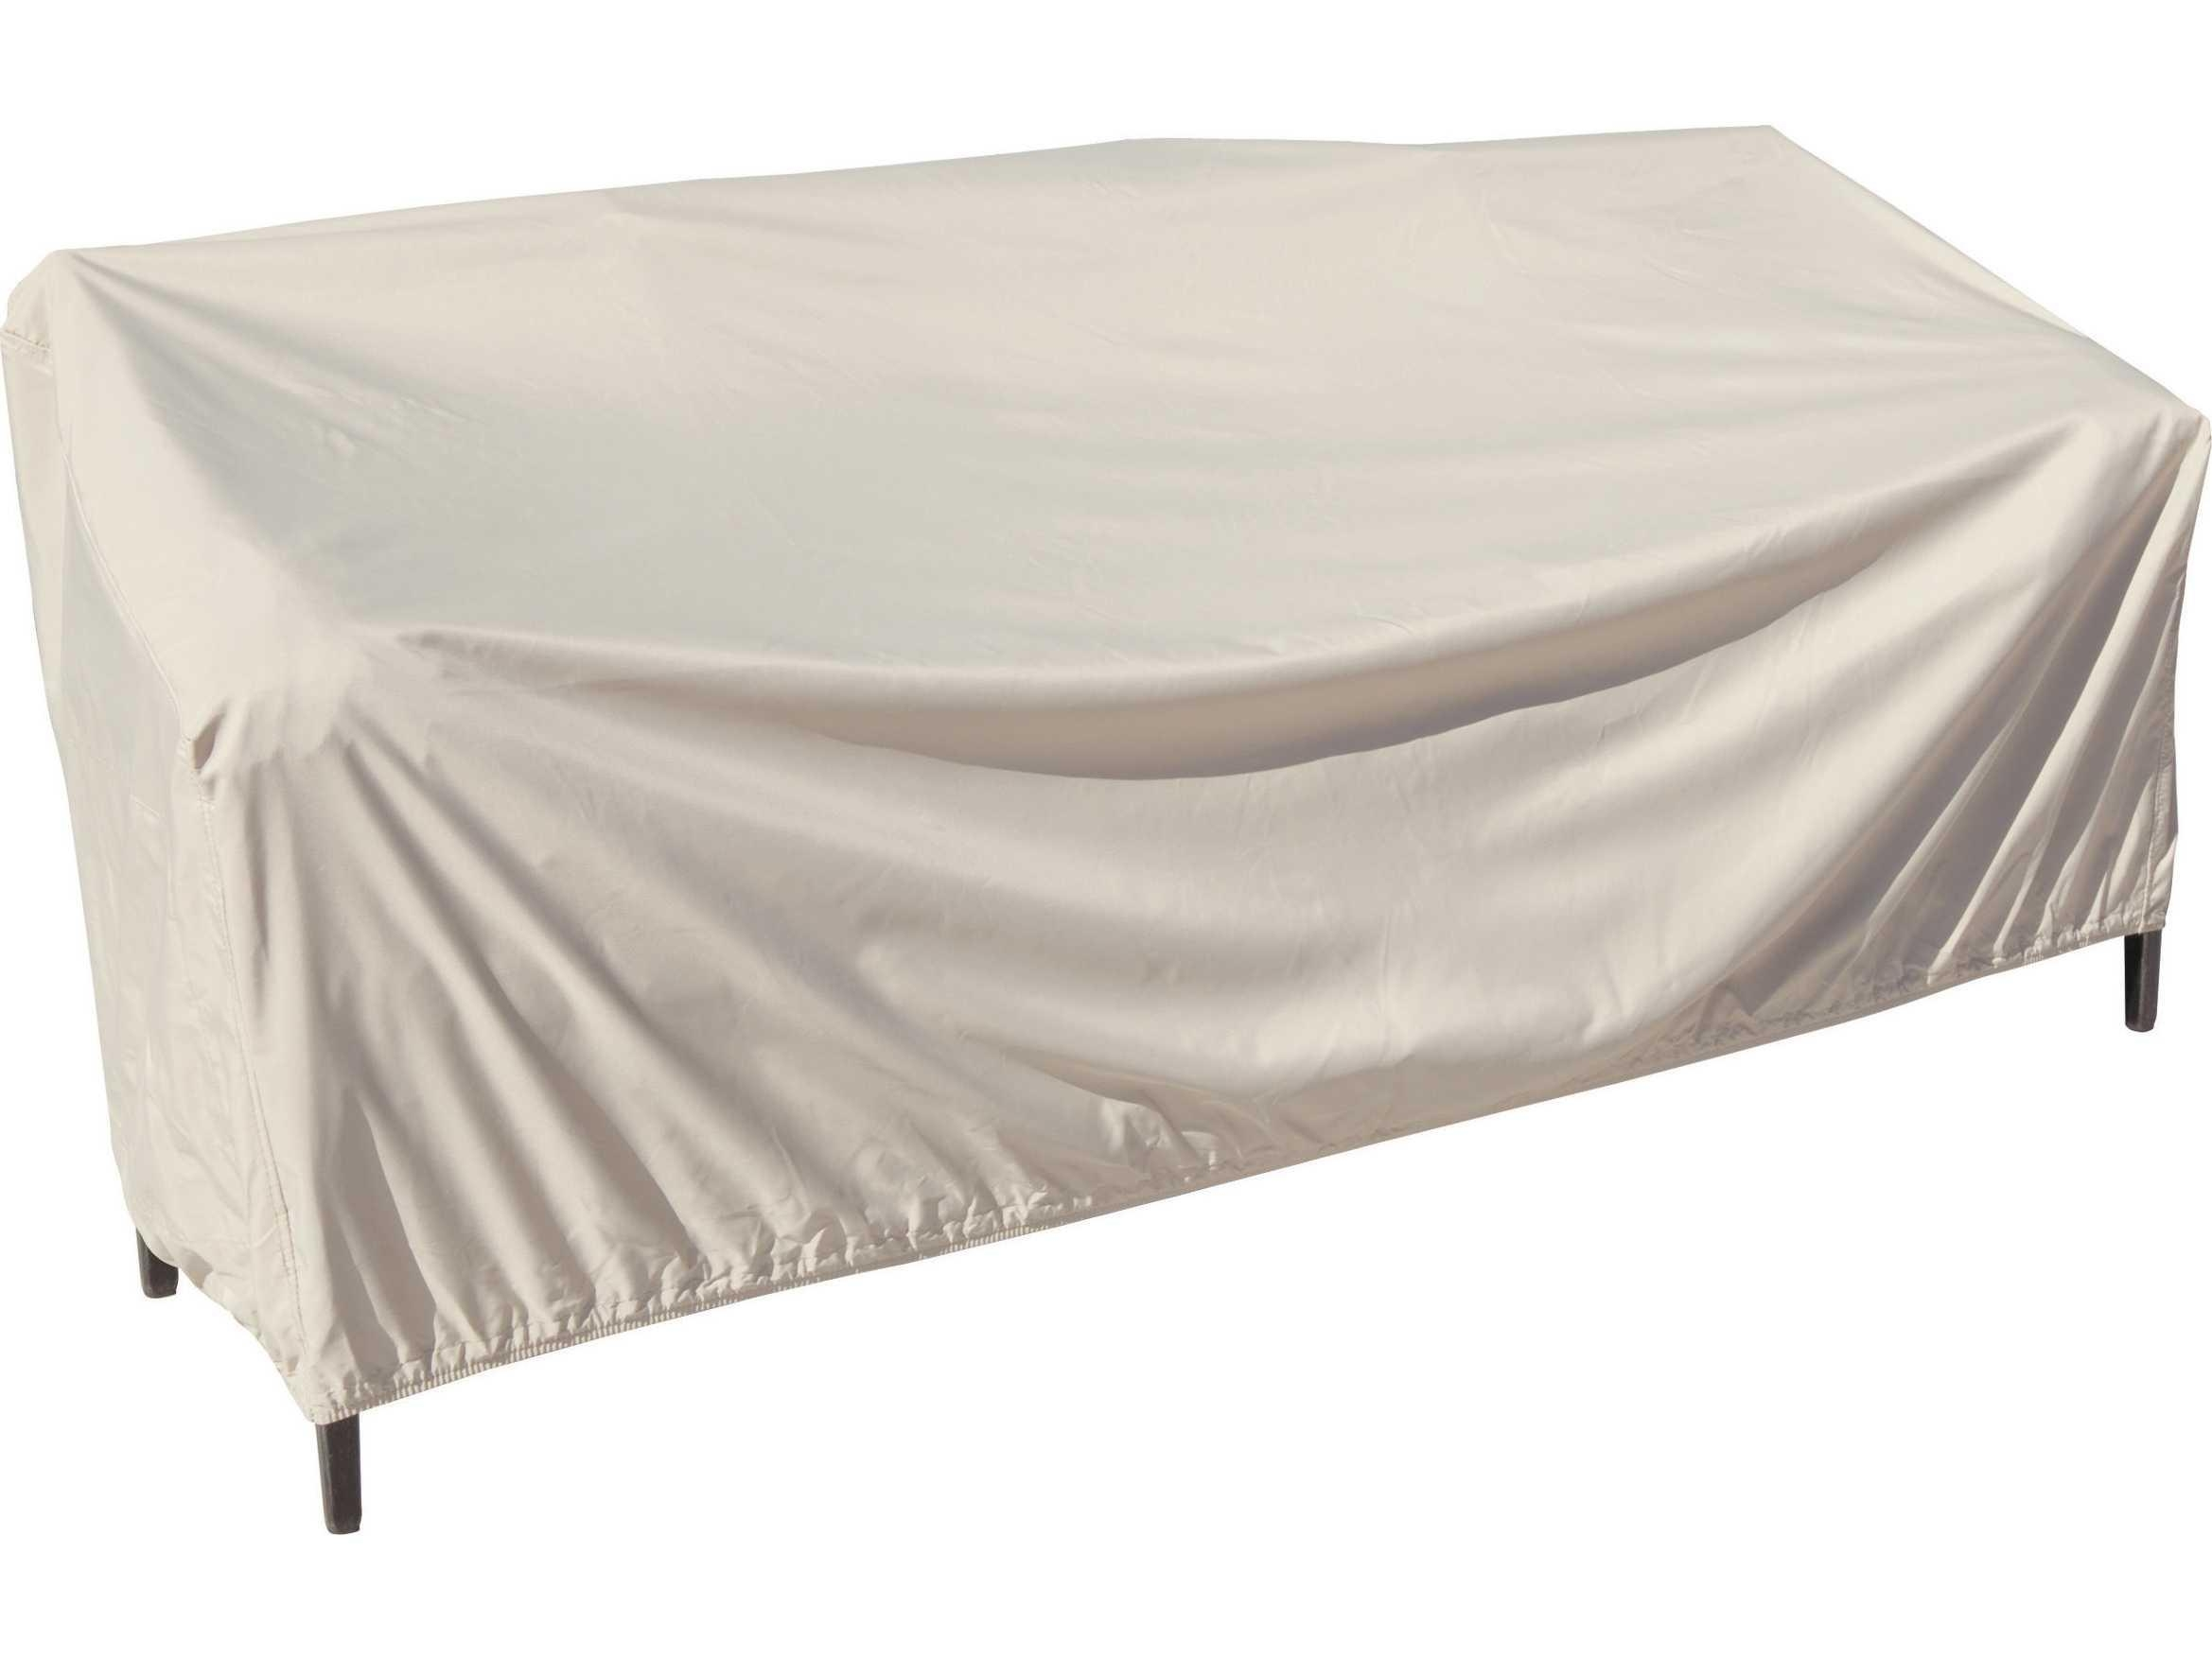 Treasure Garden X Large Sofa Cover | Cp243 Intended For Garden Sofa Covers (View 13 of 22)